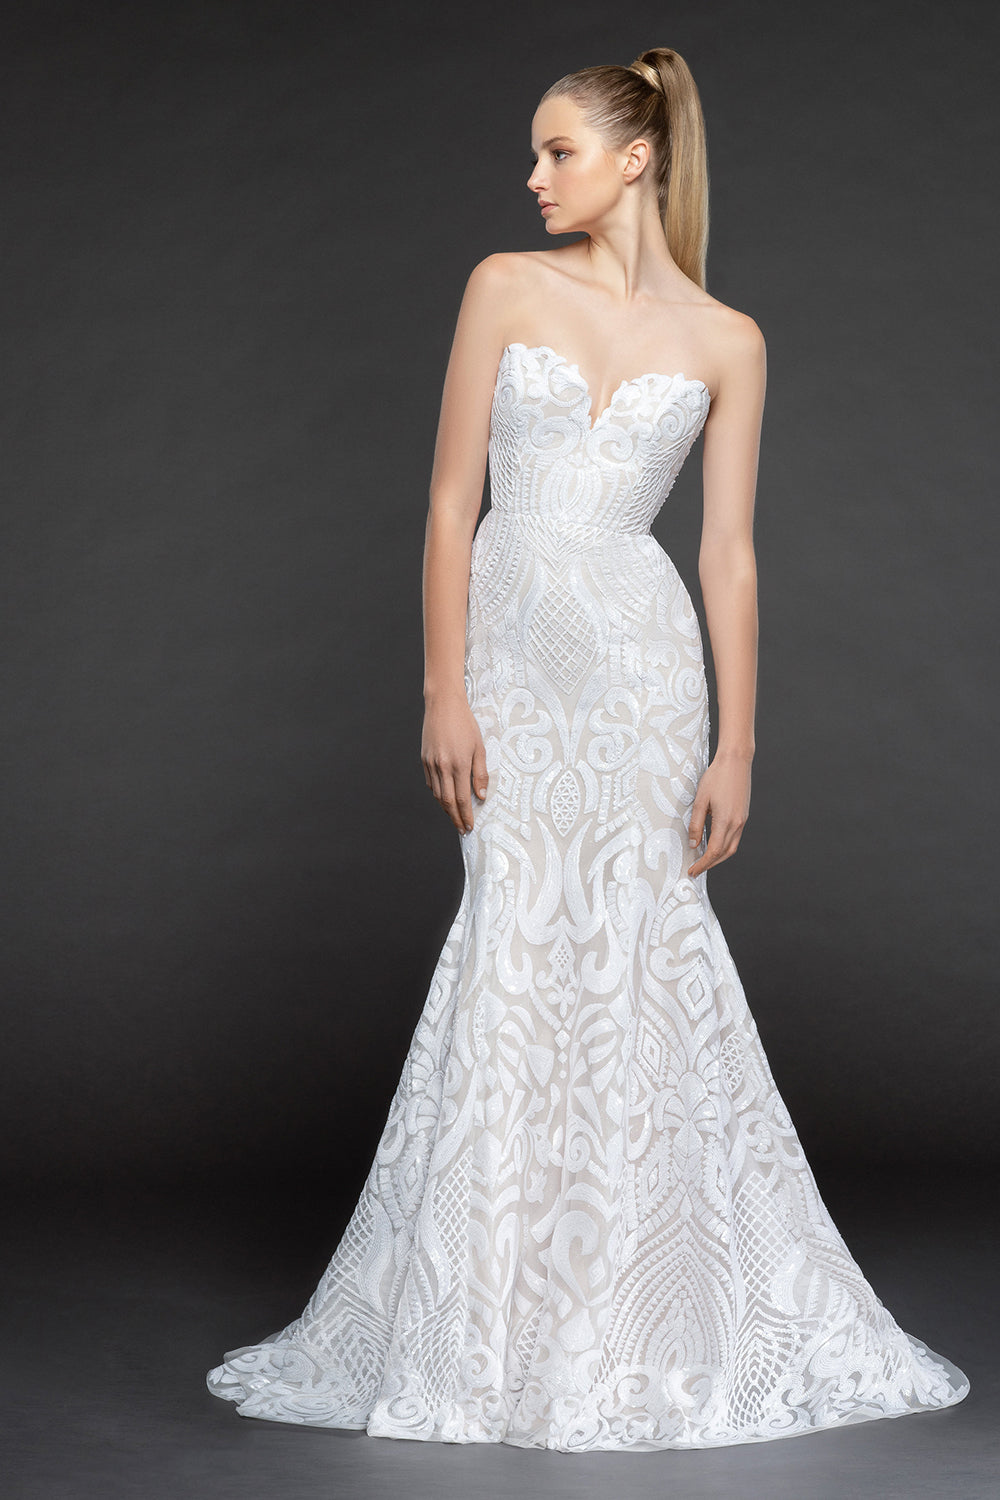 Safyr, Gown, Blush by Hayley Paige - Eternal Bridal